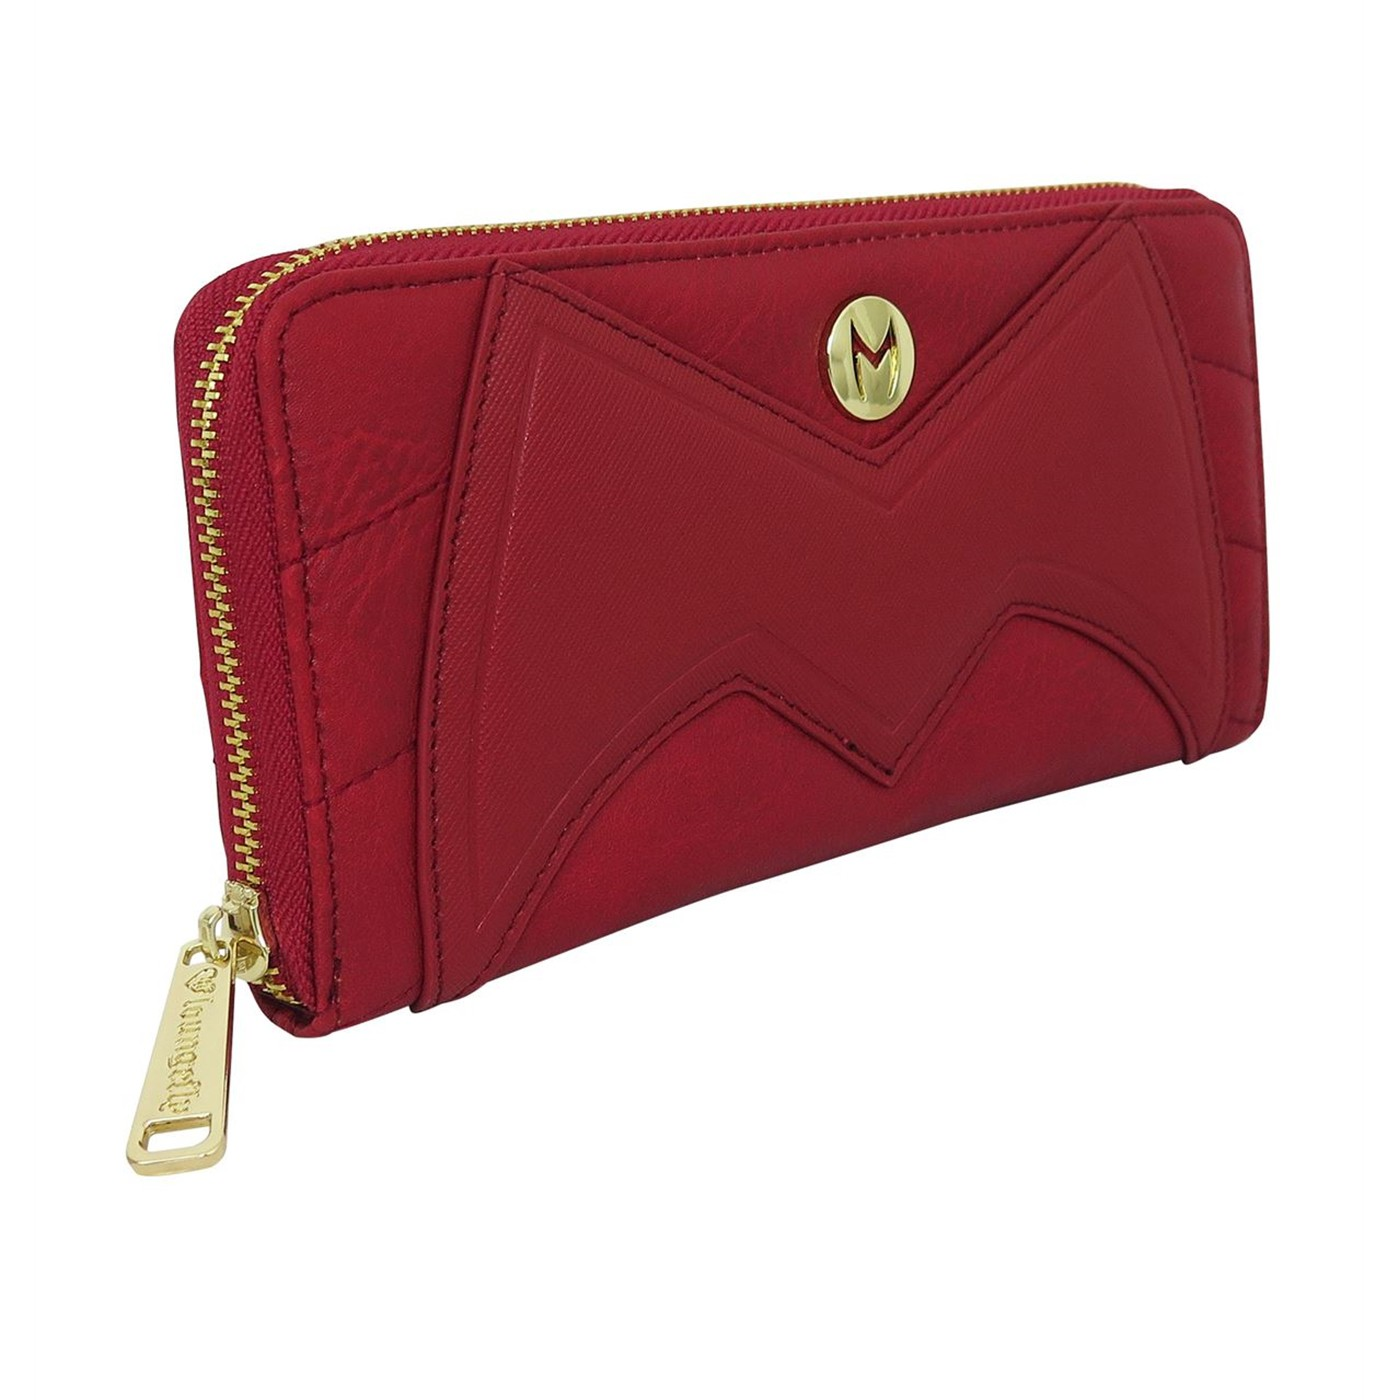 Avengers Scarlet Witch Loungefly Zip Around Wallet